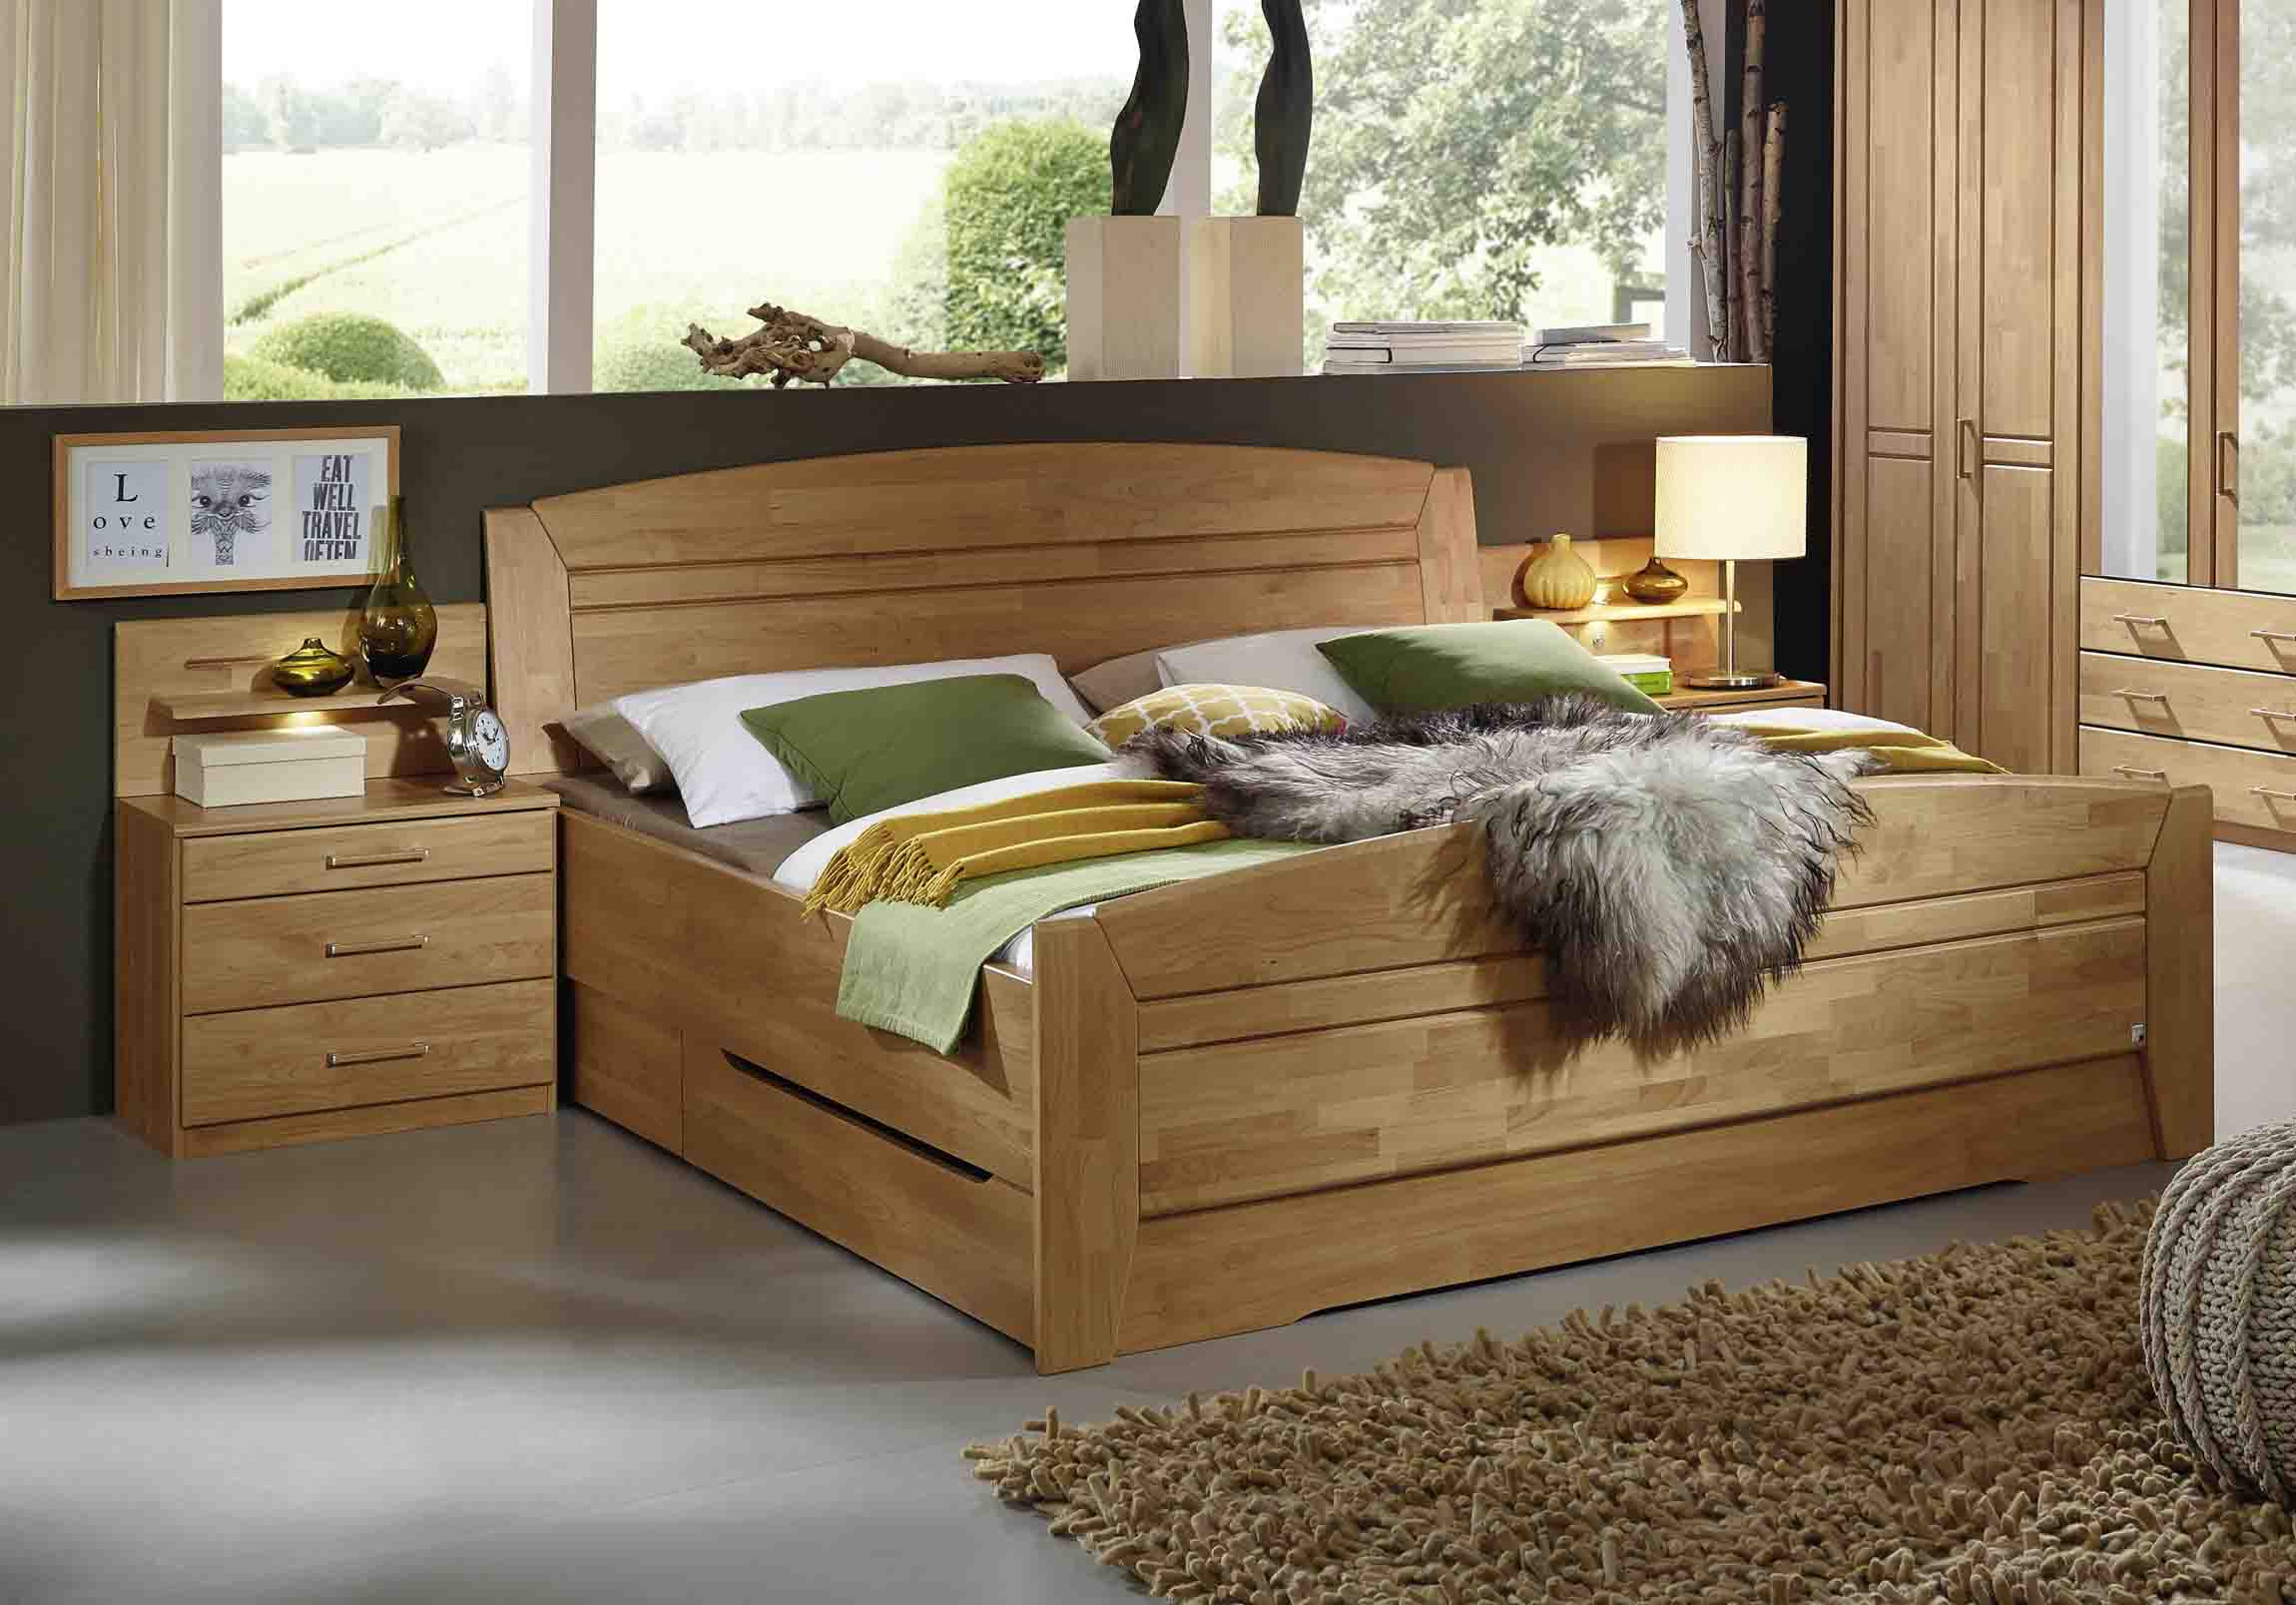 betten erle versandkostenfrei und g nstig online kaufen massiva m. Black Bedroom Furniture Sets. Home Design Ideas